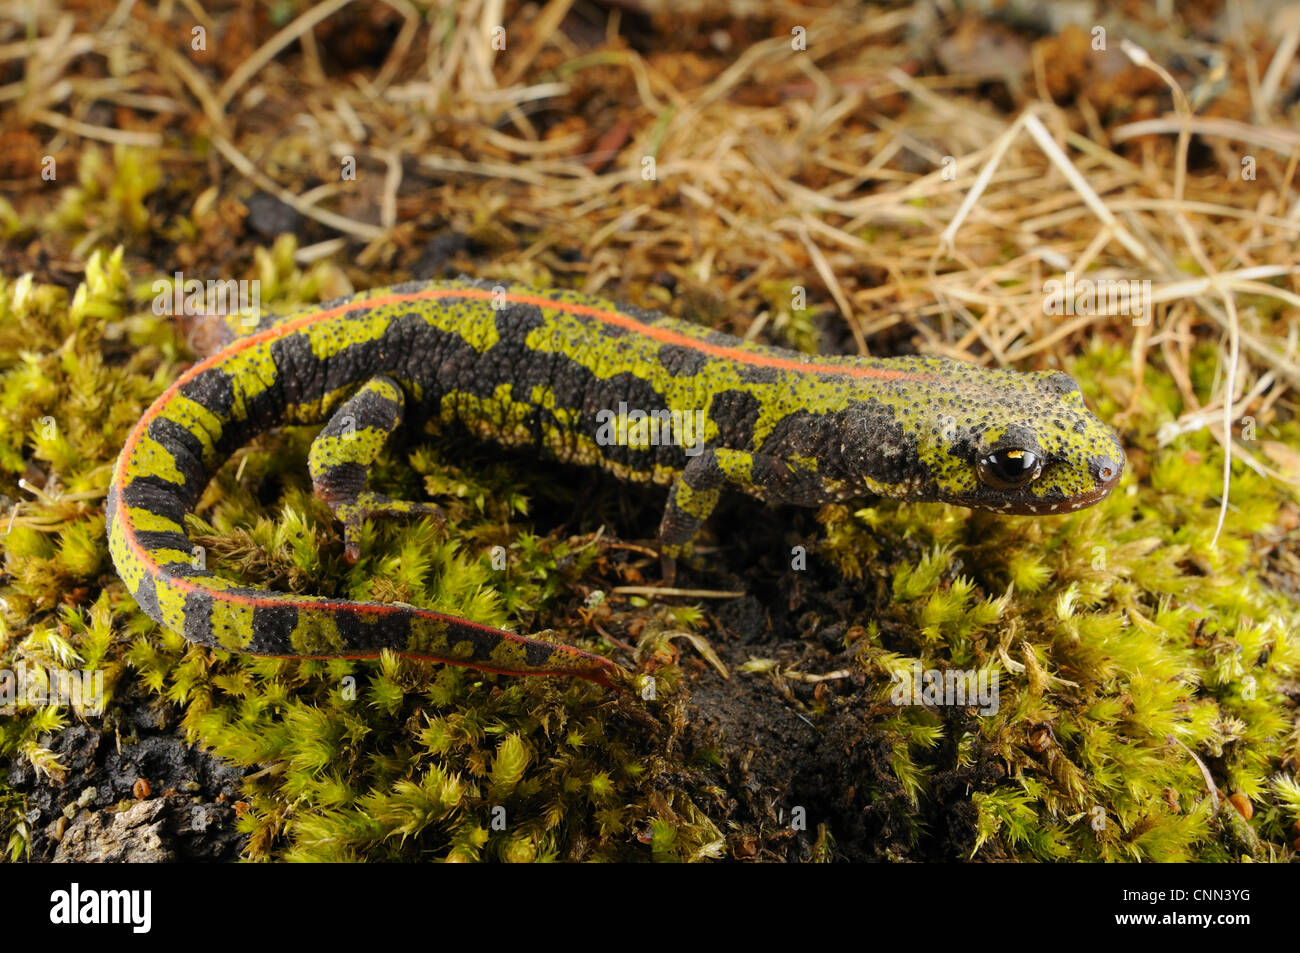 Marbled Newt (Triturus marmoratus) adult, terrestrial phase, walking on moss, Spain, september Stock Photo